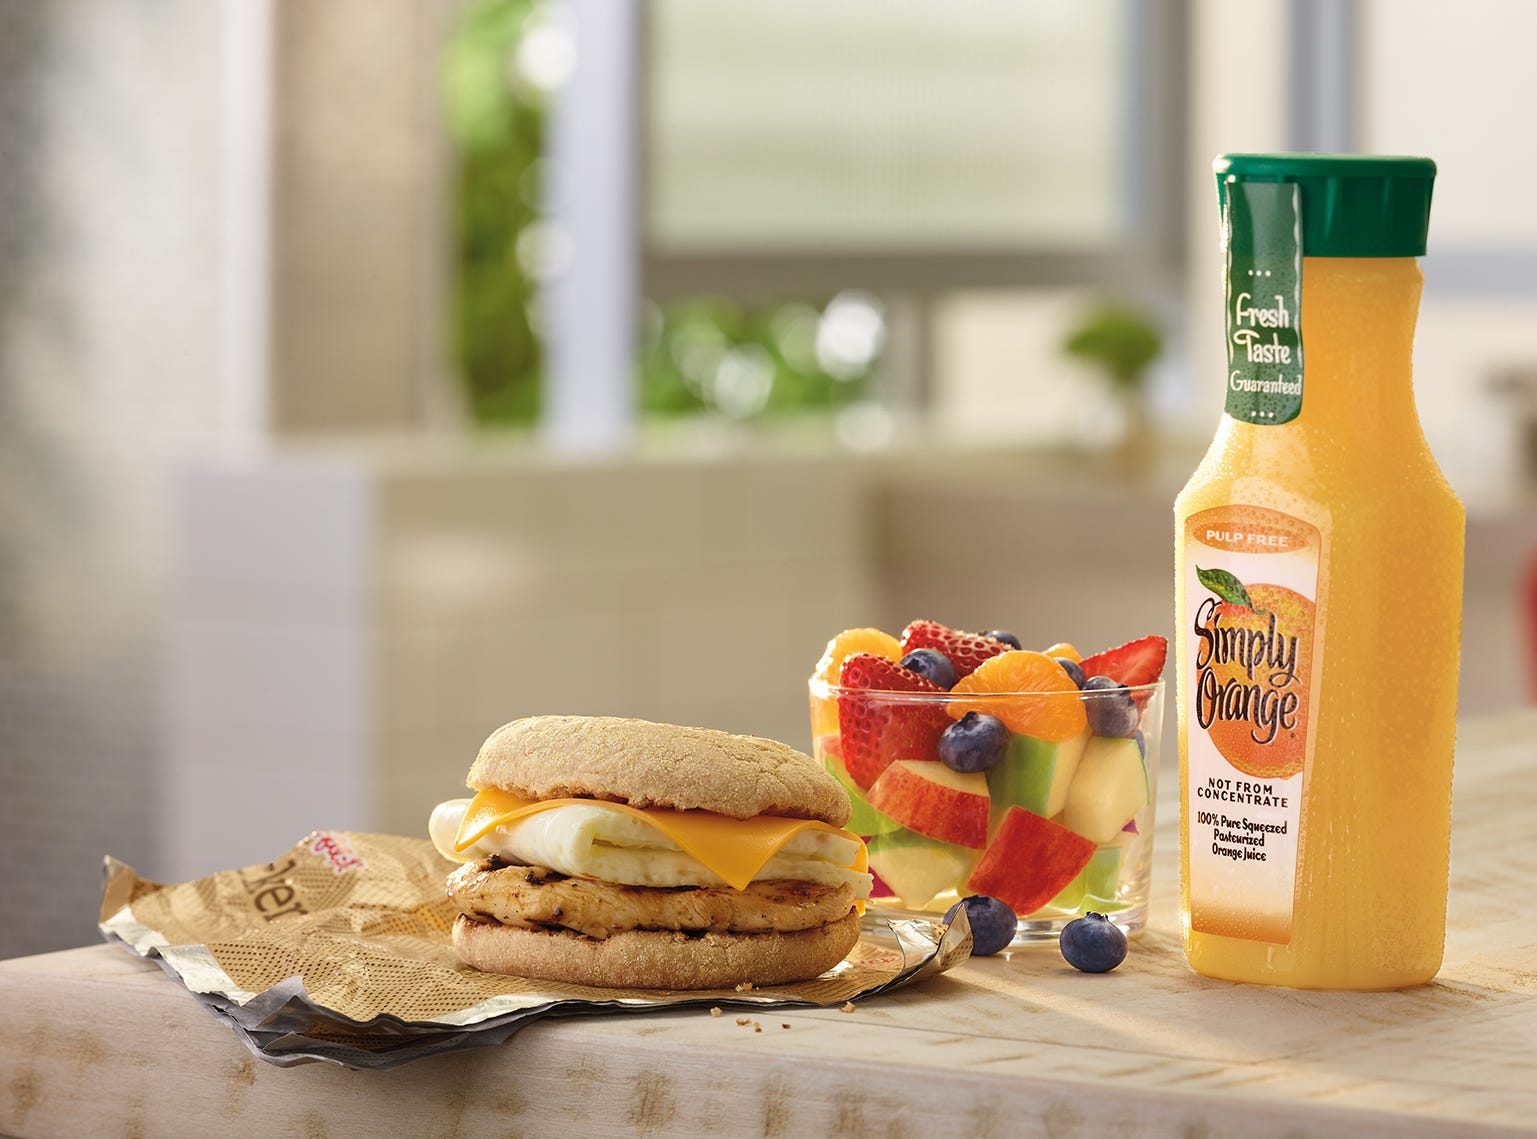 Chick-fil-A eggwhite grill with fruit and Simply Orange juice